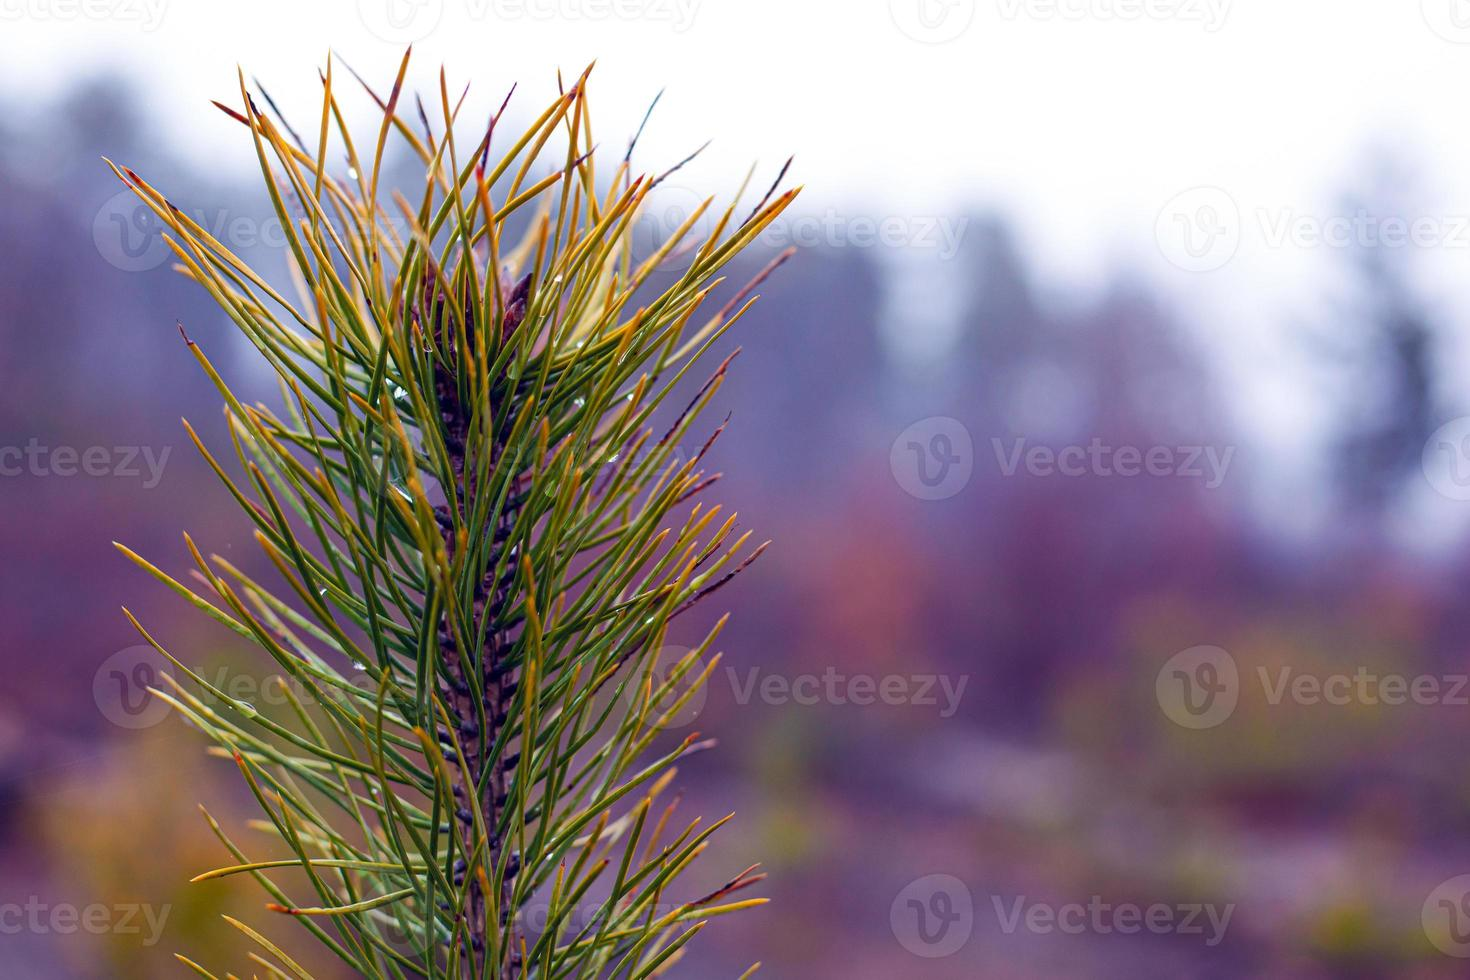 Sprig of coniferous evergreen pine on blurred forest background with dew drops photo